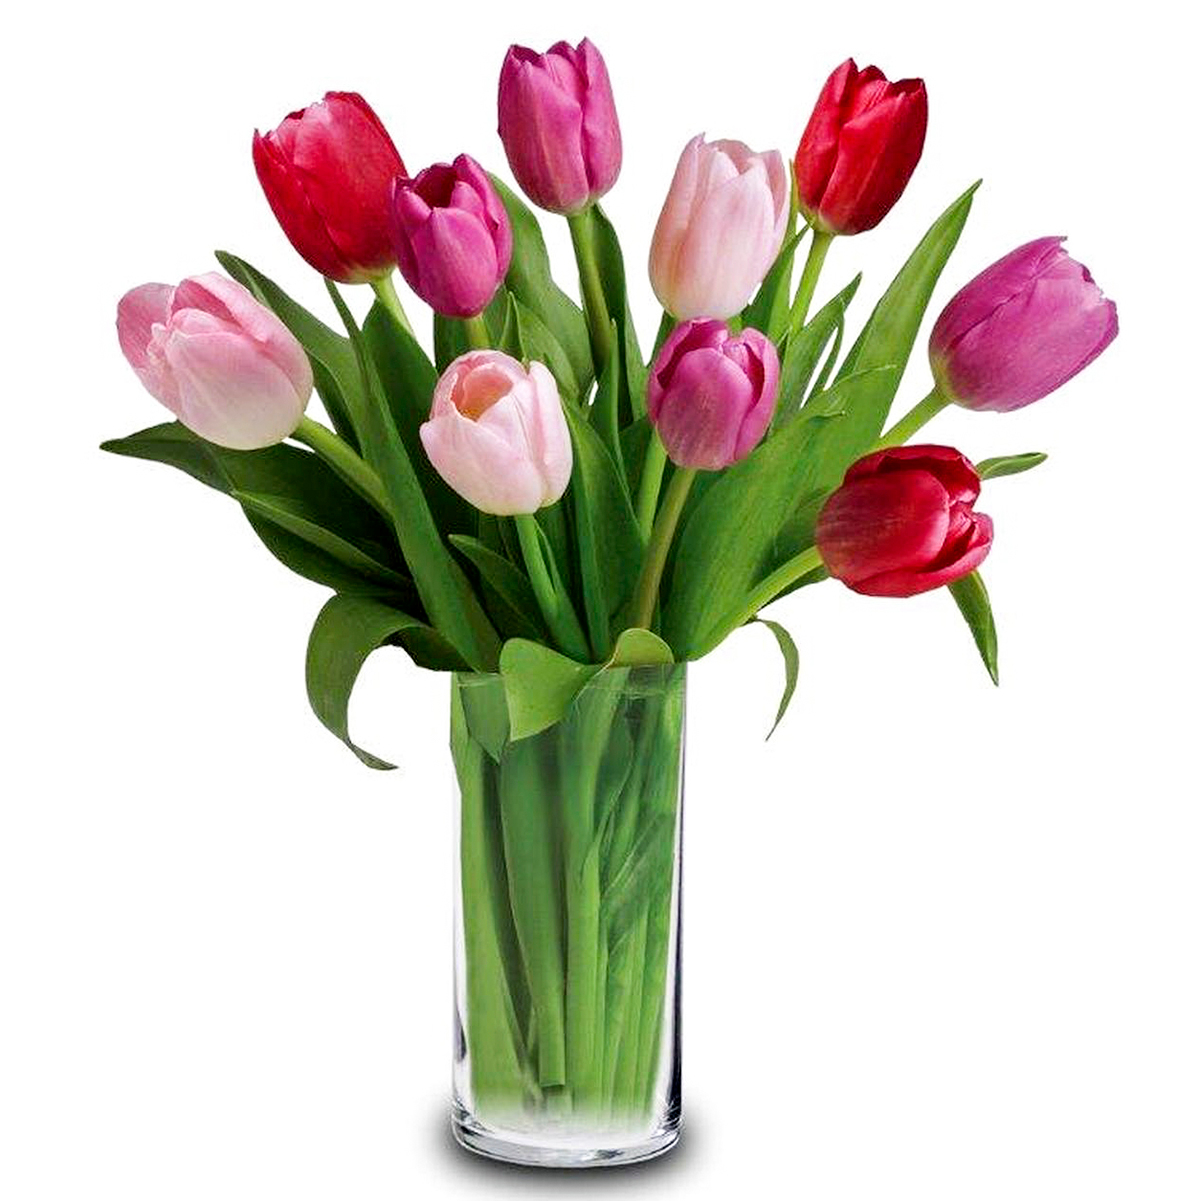 Carlton's flowers - tulips in a vase